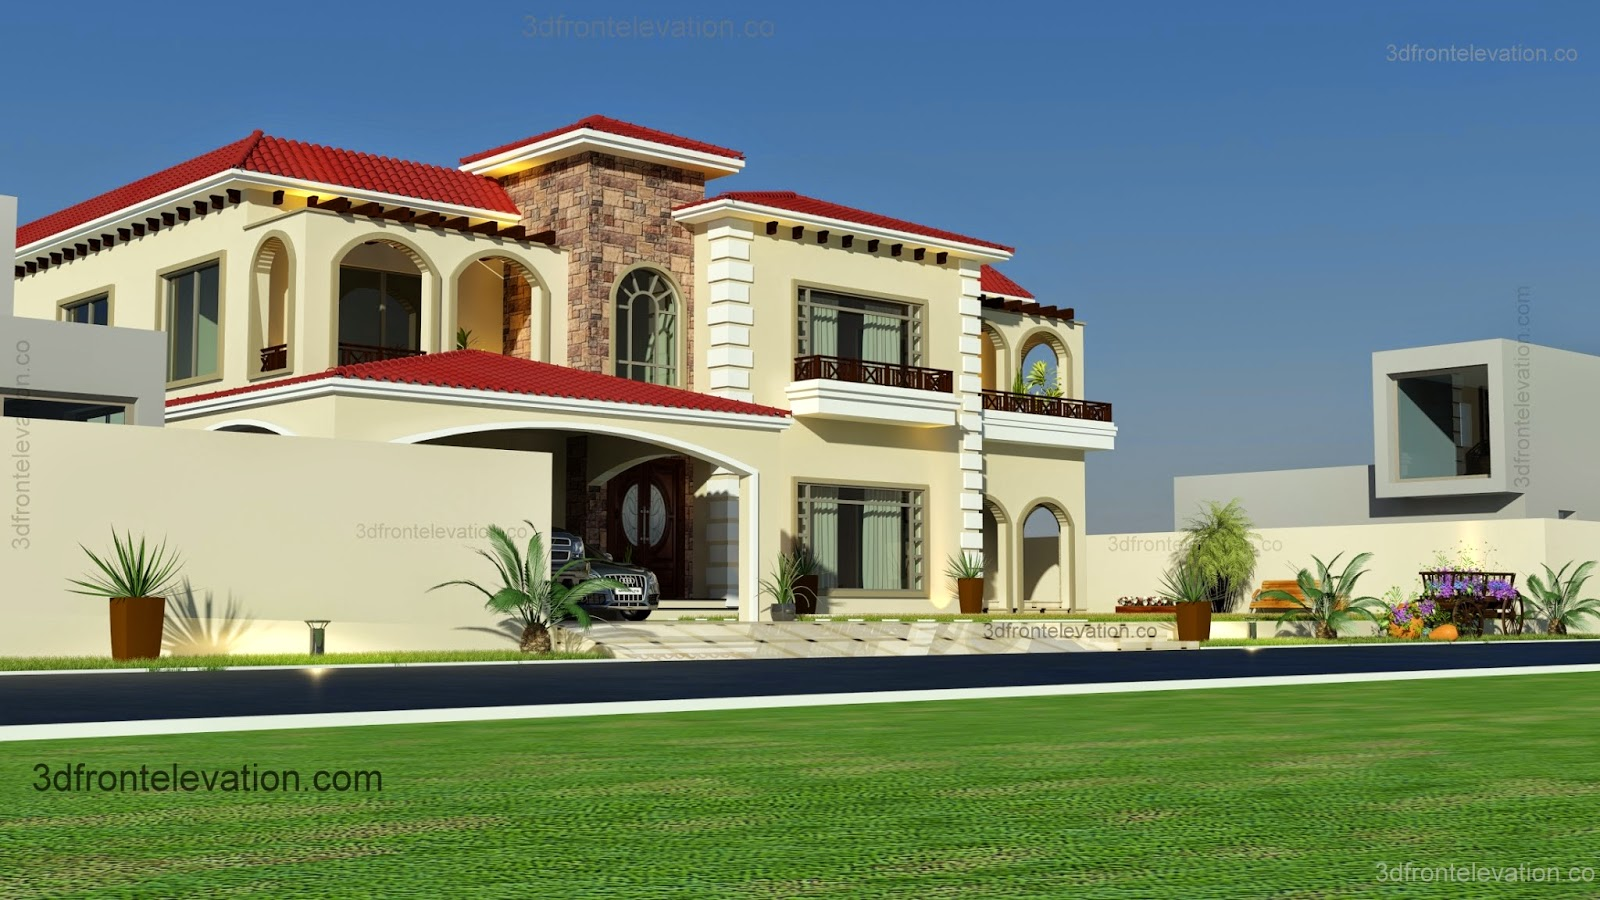 Samples Of Front Elevation Of Houses : D front elevation beautiful mediterranean house